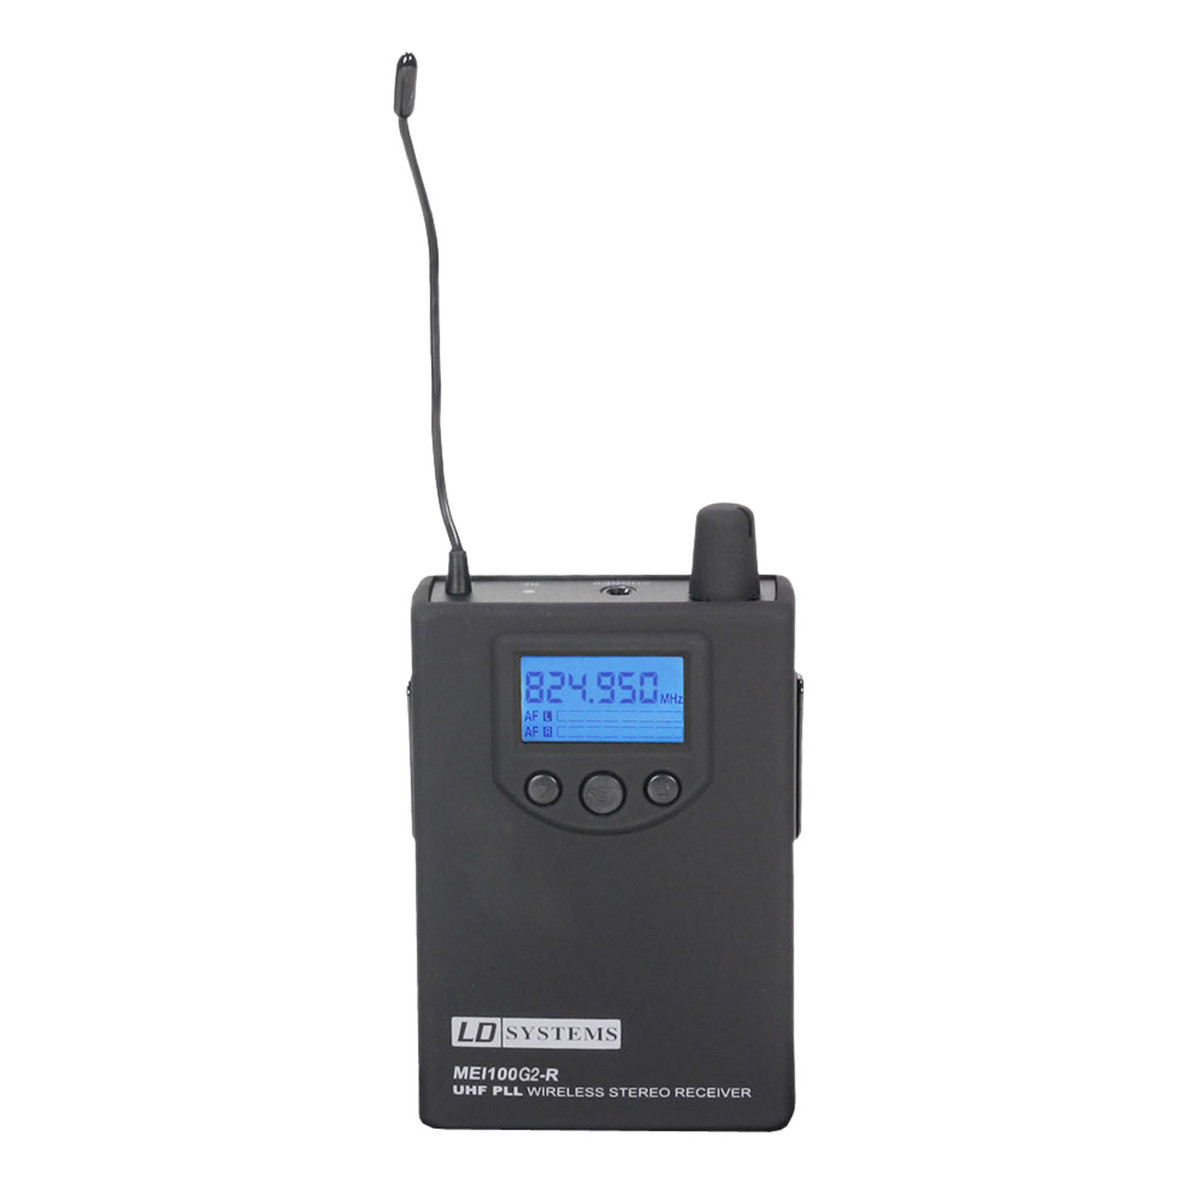 Image of LD Systems MEI 100 G2 BPR Belt Pack Receiver